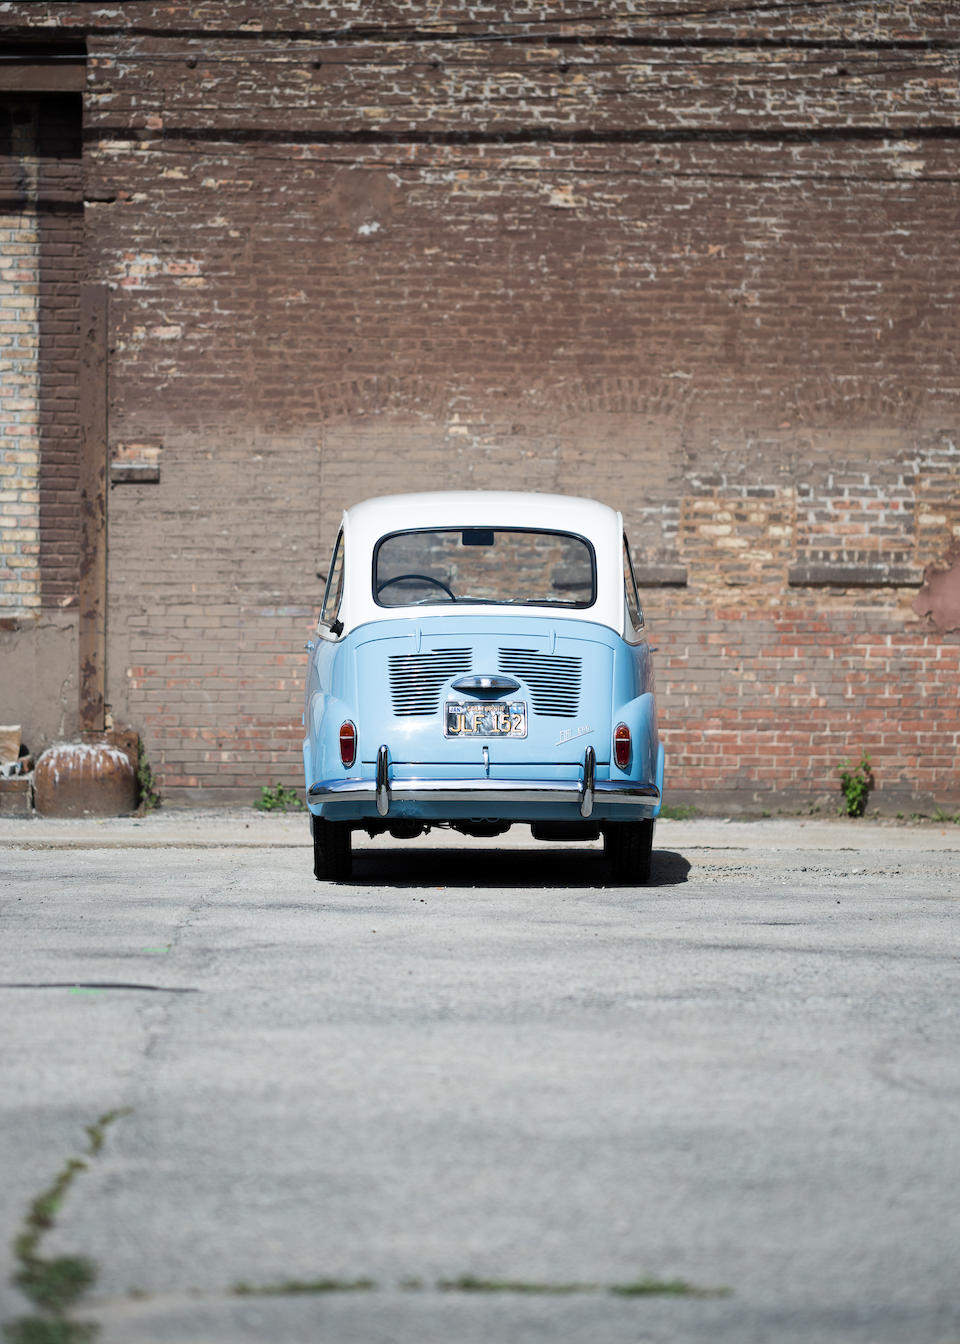 1958 fiat 600 multipla chassis no  042086 engine no  640450